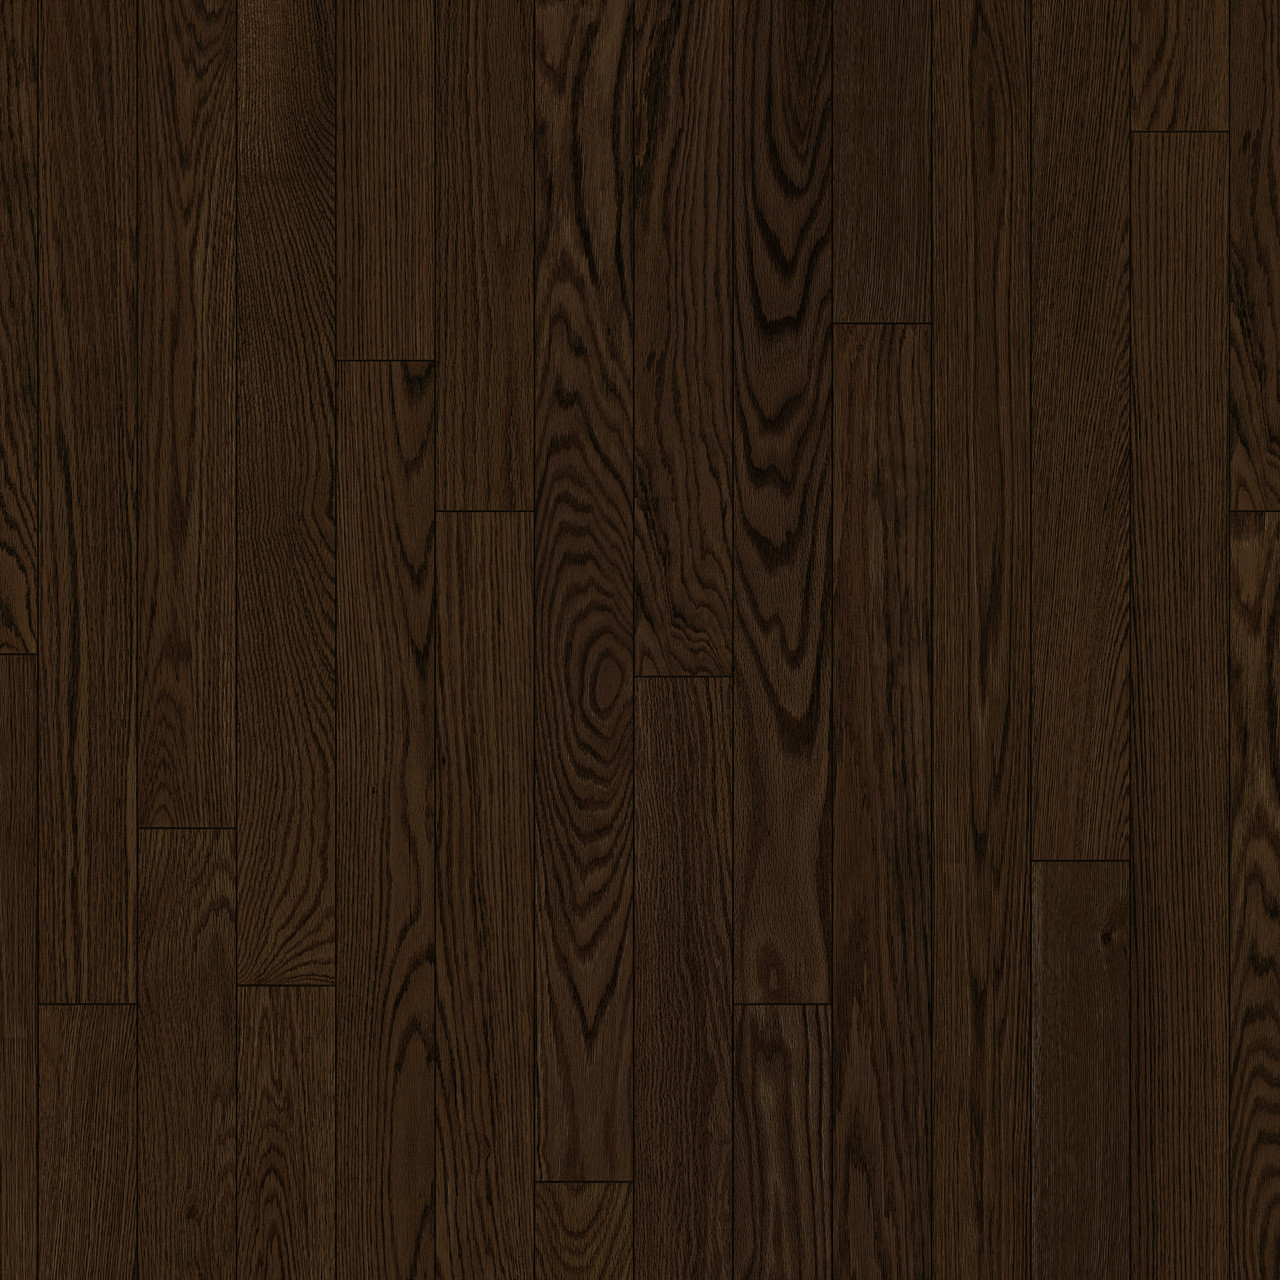 14 Great Hardwood Flooring Ajax Pickering 2021 free download hardwood flooring ajax pickering of hardwood flooring and installation in toronto and markham 800 263 6363 throughout d3865af5 6b57 4433 9000 3d0e59246946